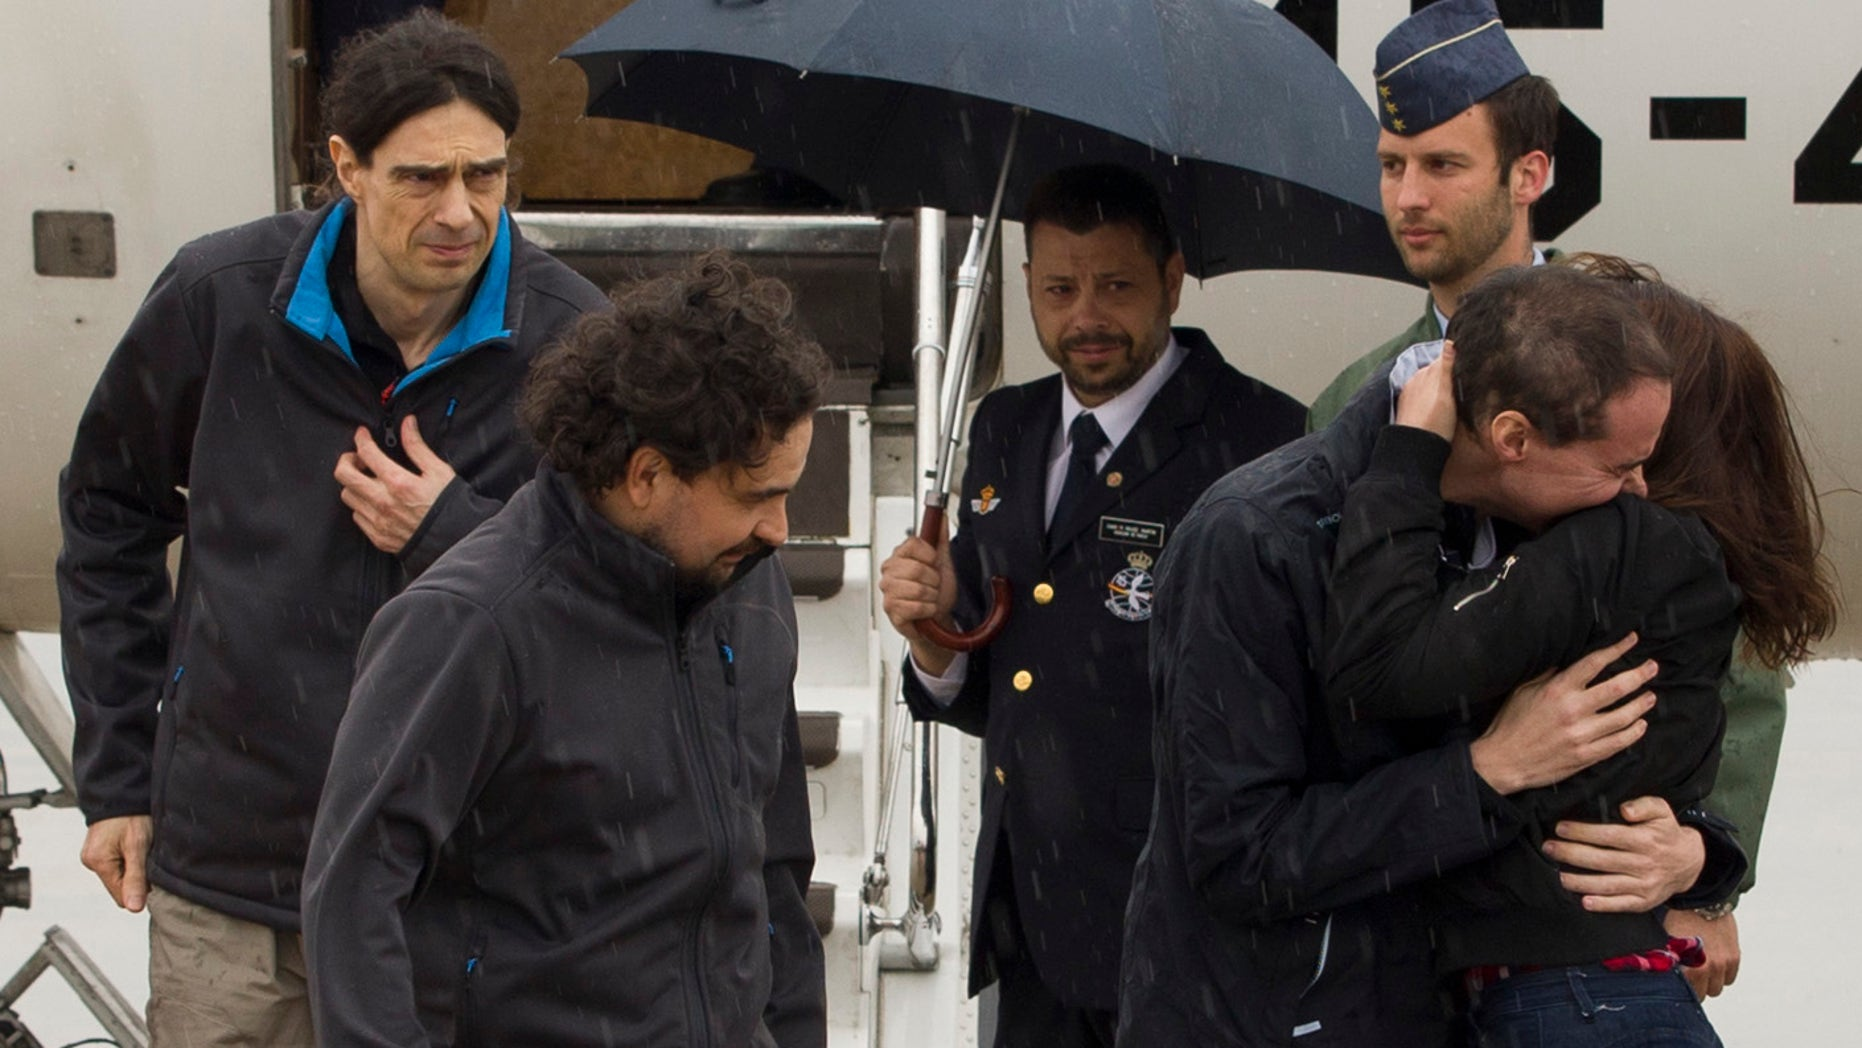 In this photo made available by Presidencia del Gobierno on Sunday, May 8, 2016, the three freed Spanish journalists Antonio Pampliega, right, Jose Manuel Lopez, left, and Angel Sastre, arrive at the Torrejon military airbase in Madrid, Spain. Three Spanish journalists who went missing while working in Syria in July were freed from captivity, the Spanish government said on Saturday. Antonio Pampliega, Jose Manuel Lopez and Angel Sastre disappeared near the city of Aleppo in northern Syria on July 12. (Pool Moncloa via AP)